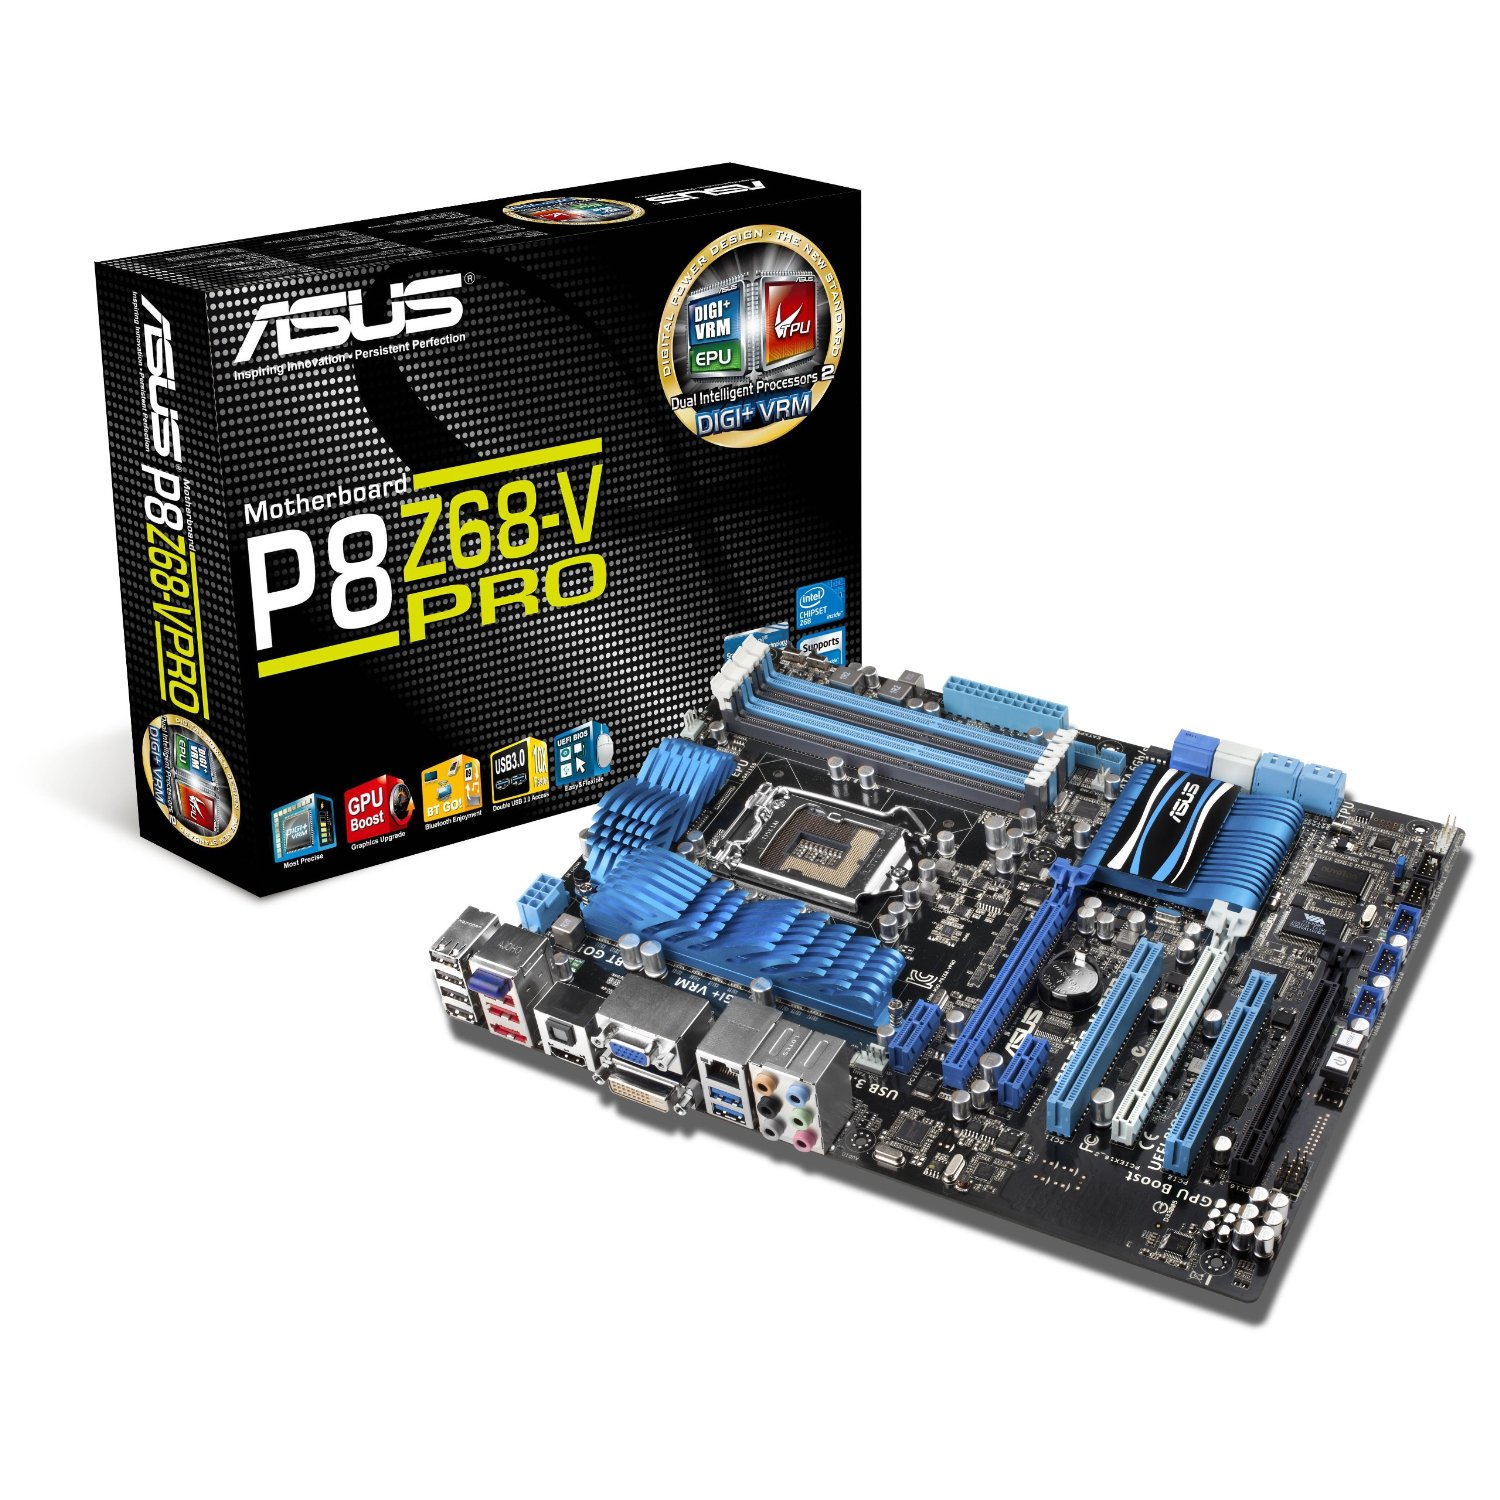 Best New Z68 1155 Motherboard 2011 – 2012